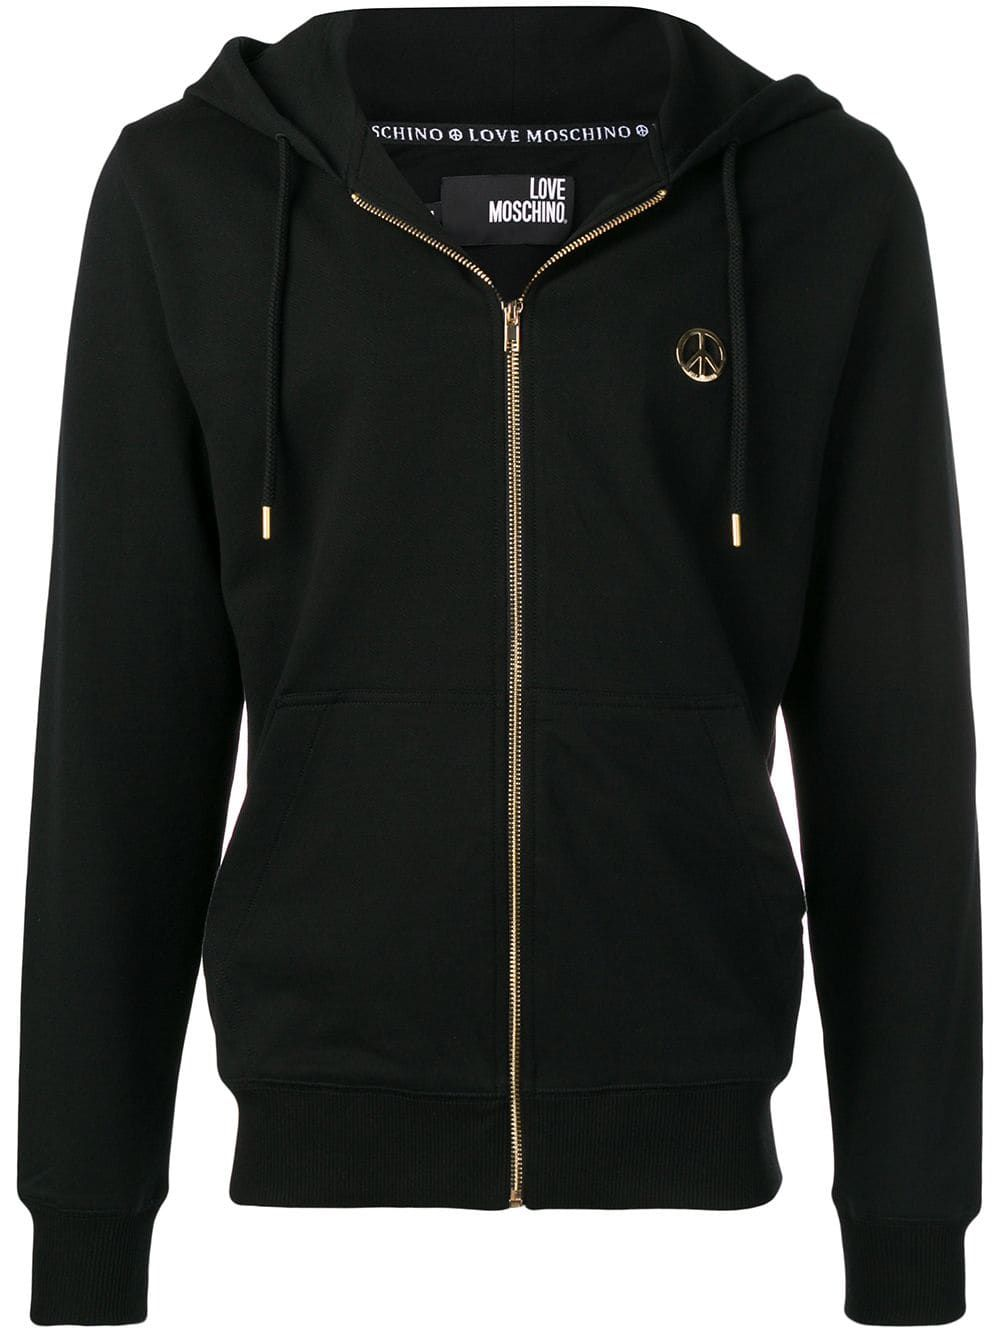 af16ca471c3f Love Moschino zip front hoodie - Black in 2019 | Products | Moschino ...